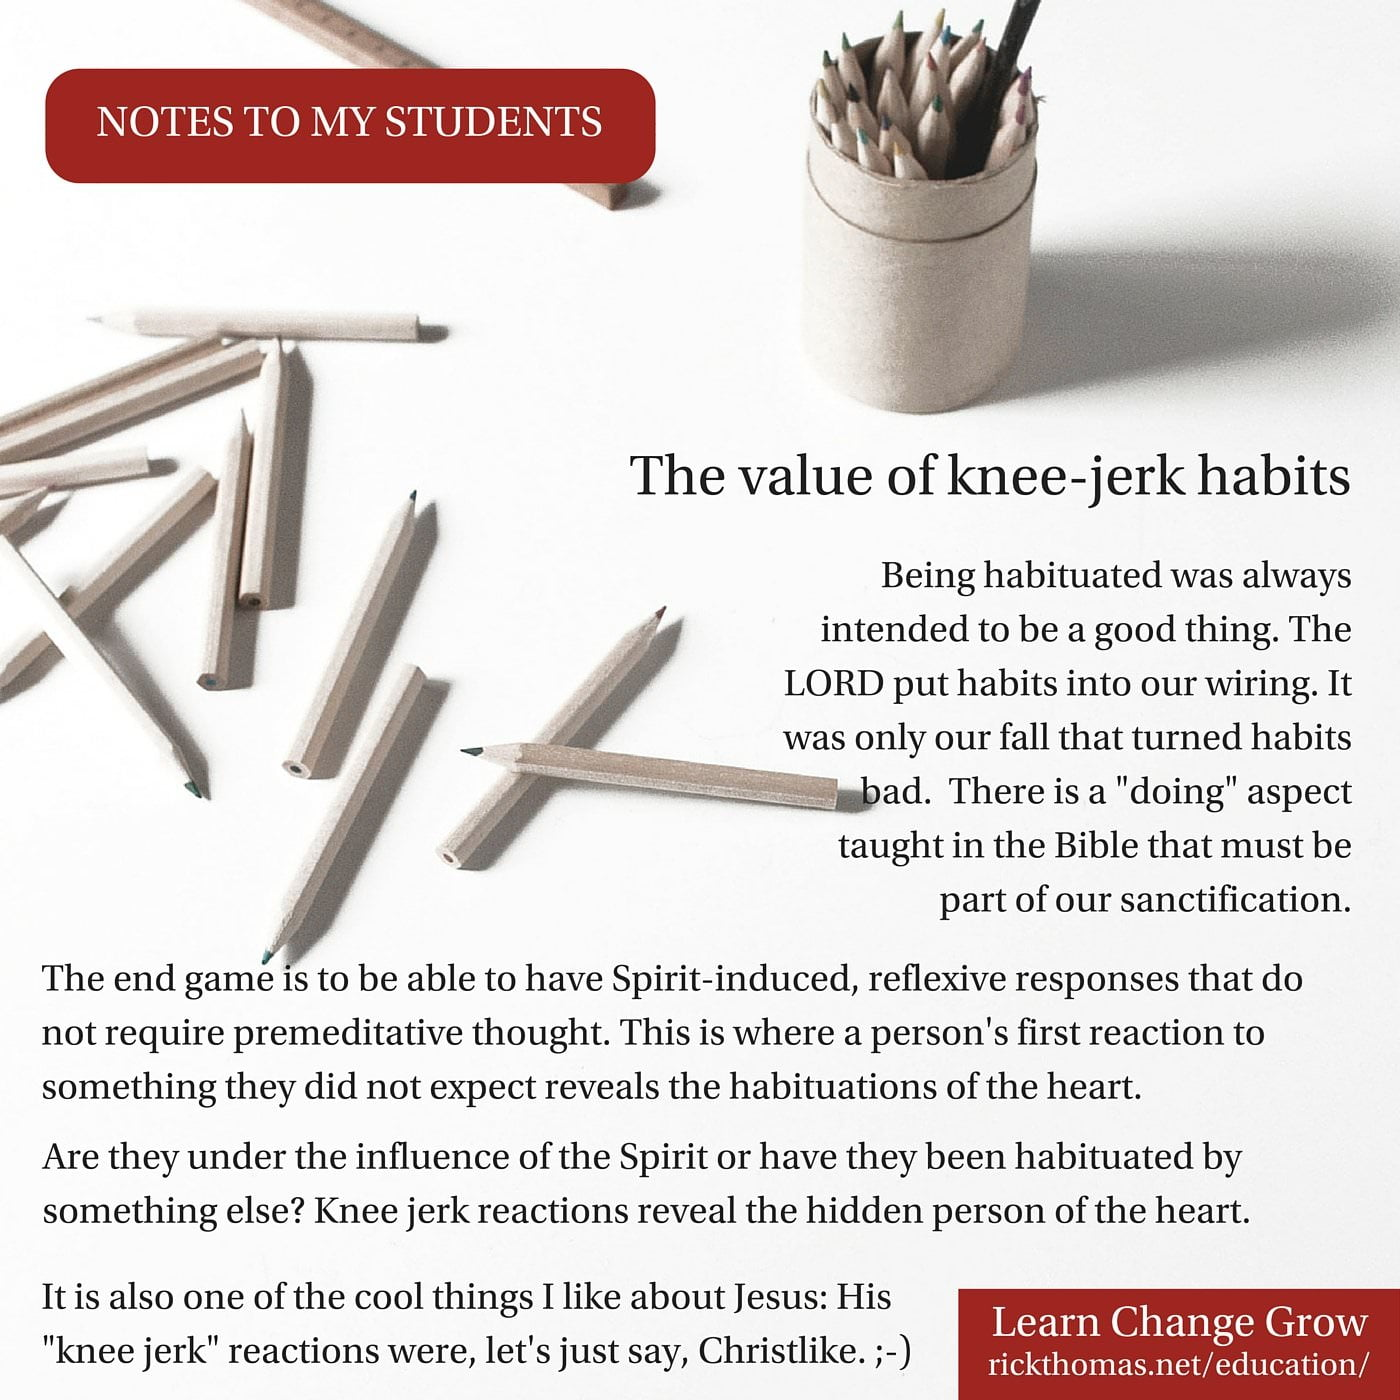 NOTE_ The value of knee-jerk habits